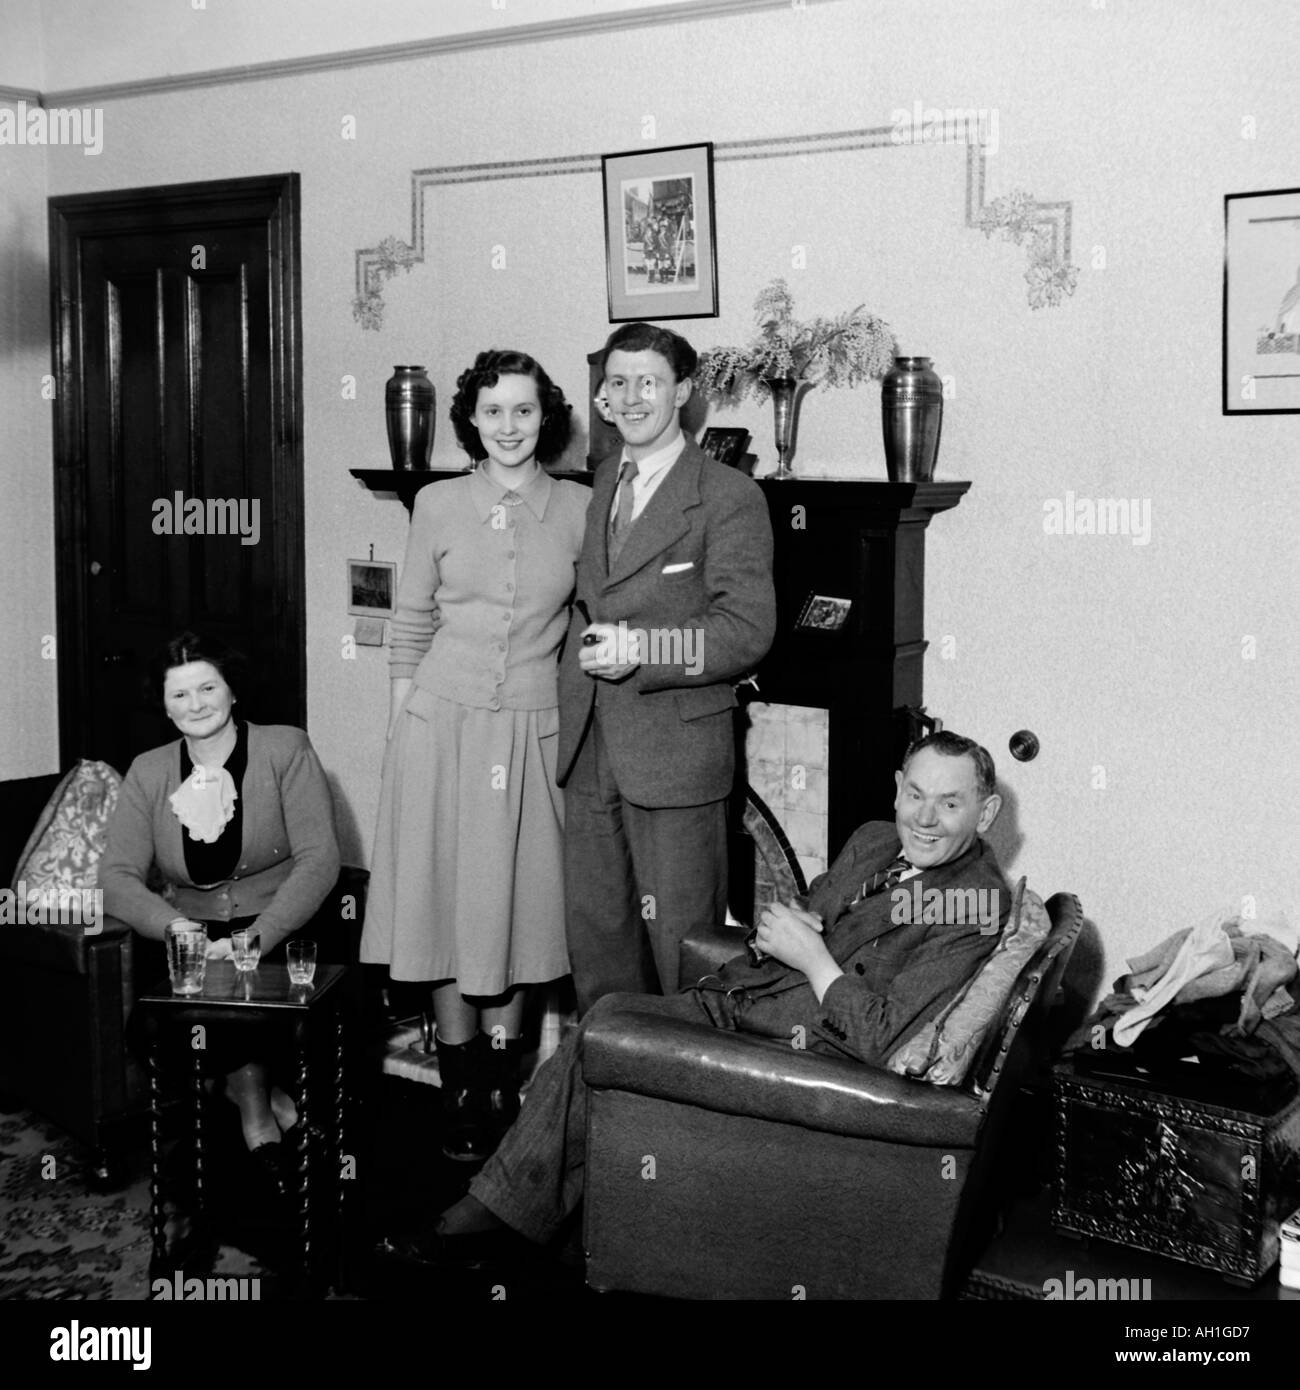 old vintage family photograph snap shot married couple with parents stock photo 4676822 alamy. Black Bedroom Furniture Sets. Home Design Ideas